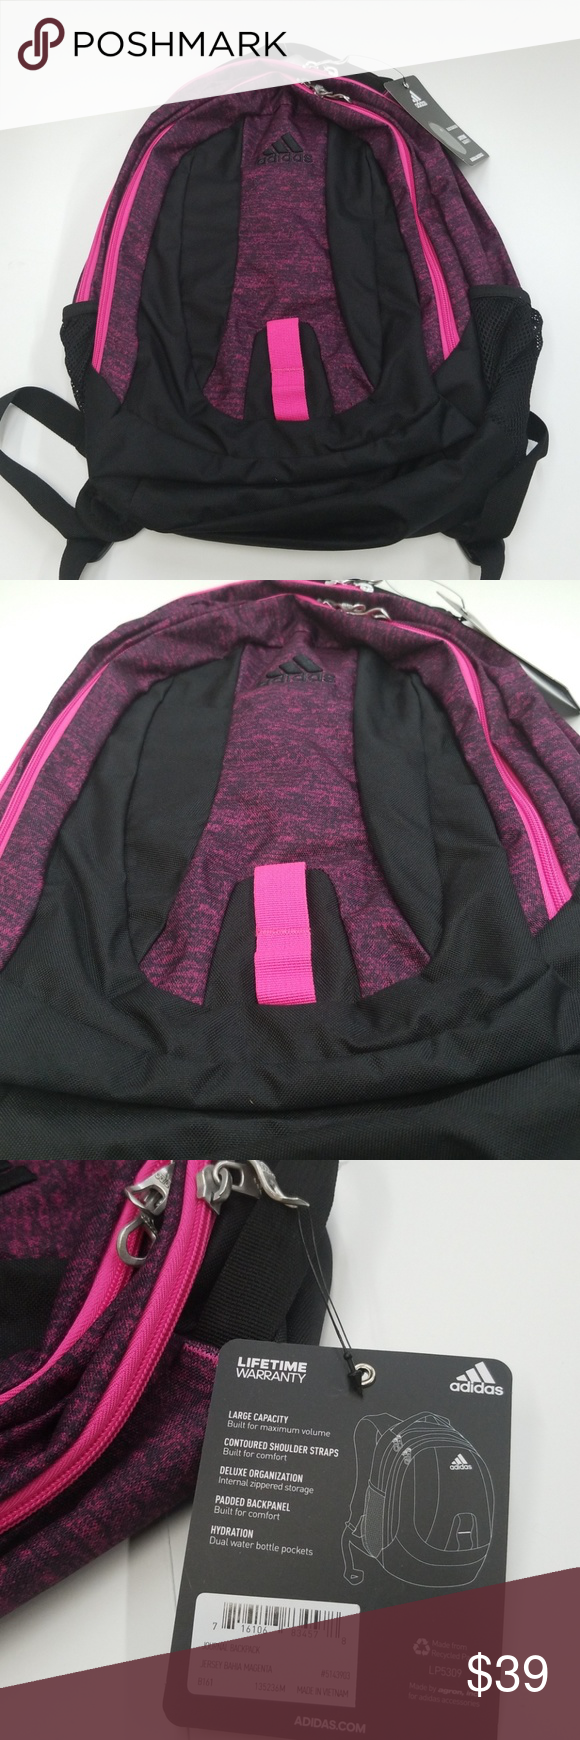 1904366757d80b Adidas Travel Gym Backpack NEW ADIDAS Large Capacity School Travel Gym  Backpack Black Pink 17